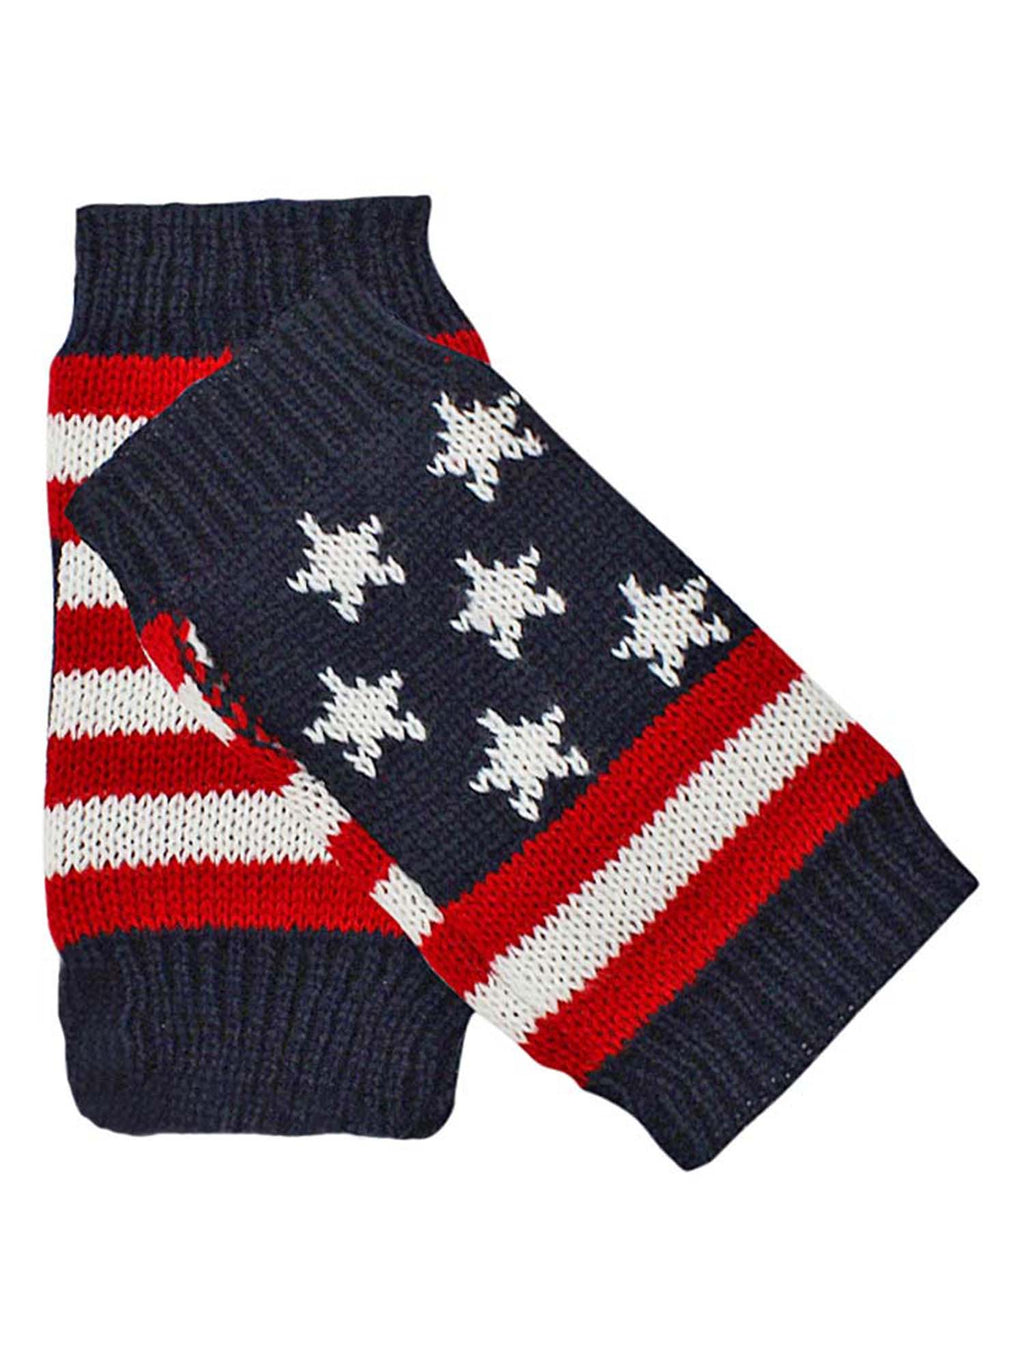 American Flag Knit Fingerless Glove Arm Warmers